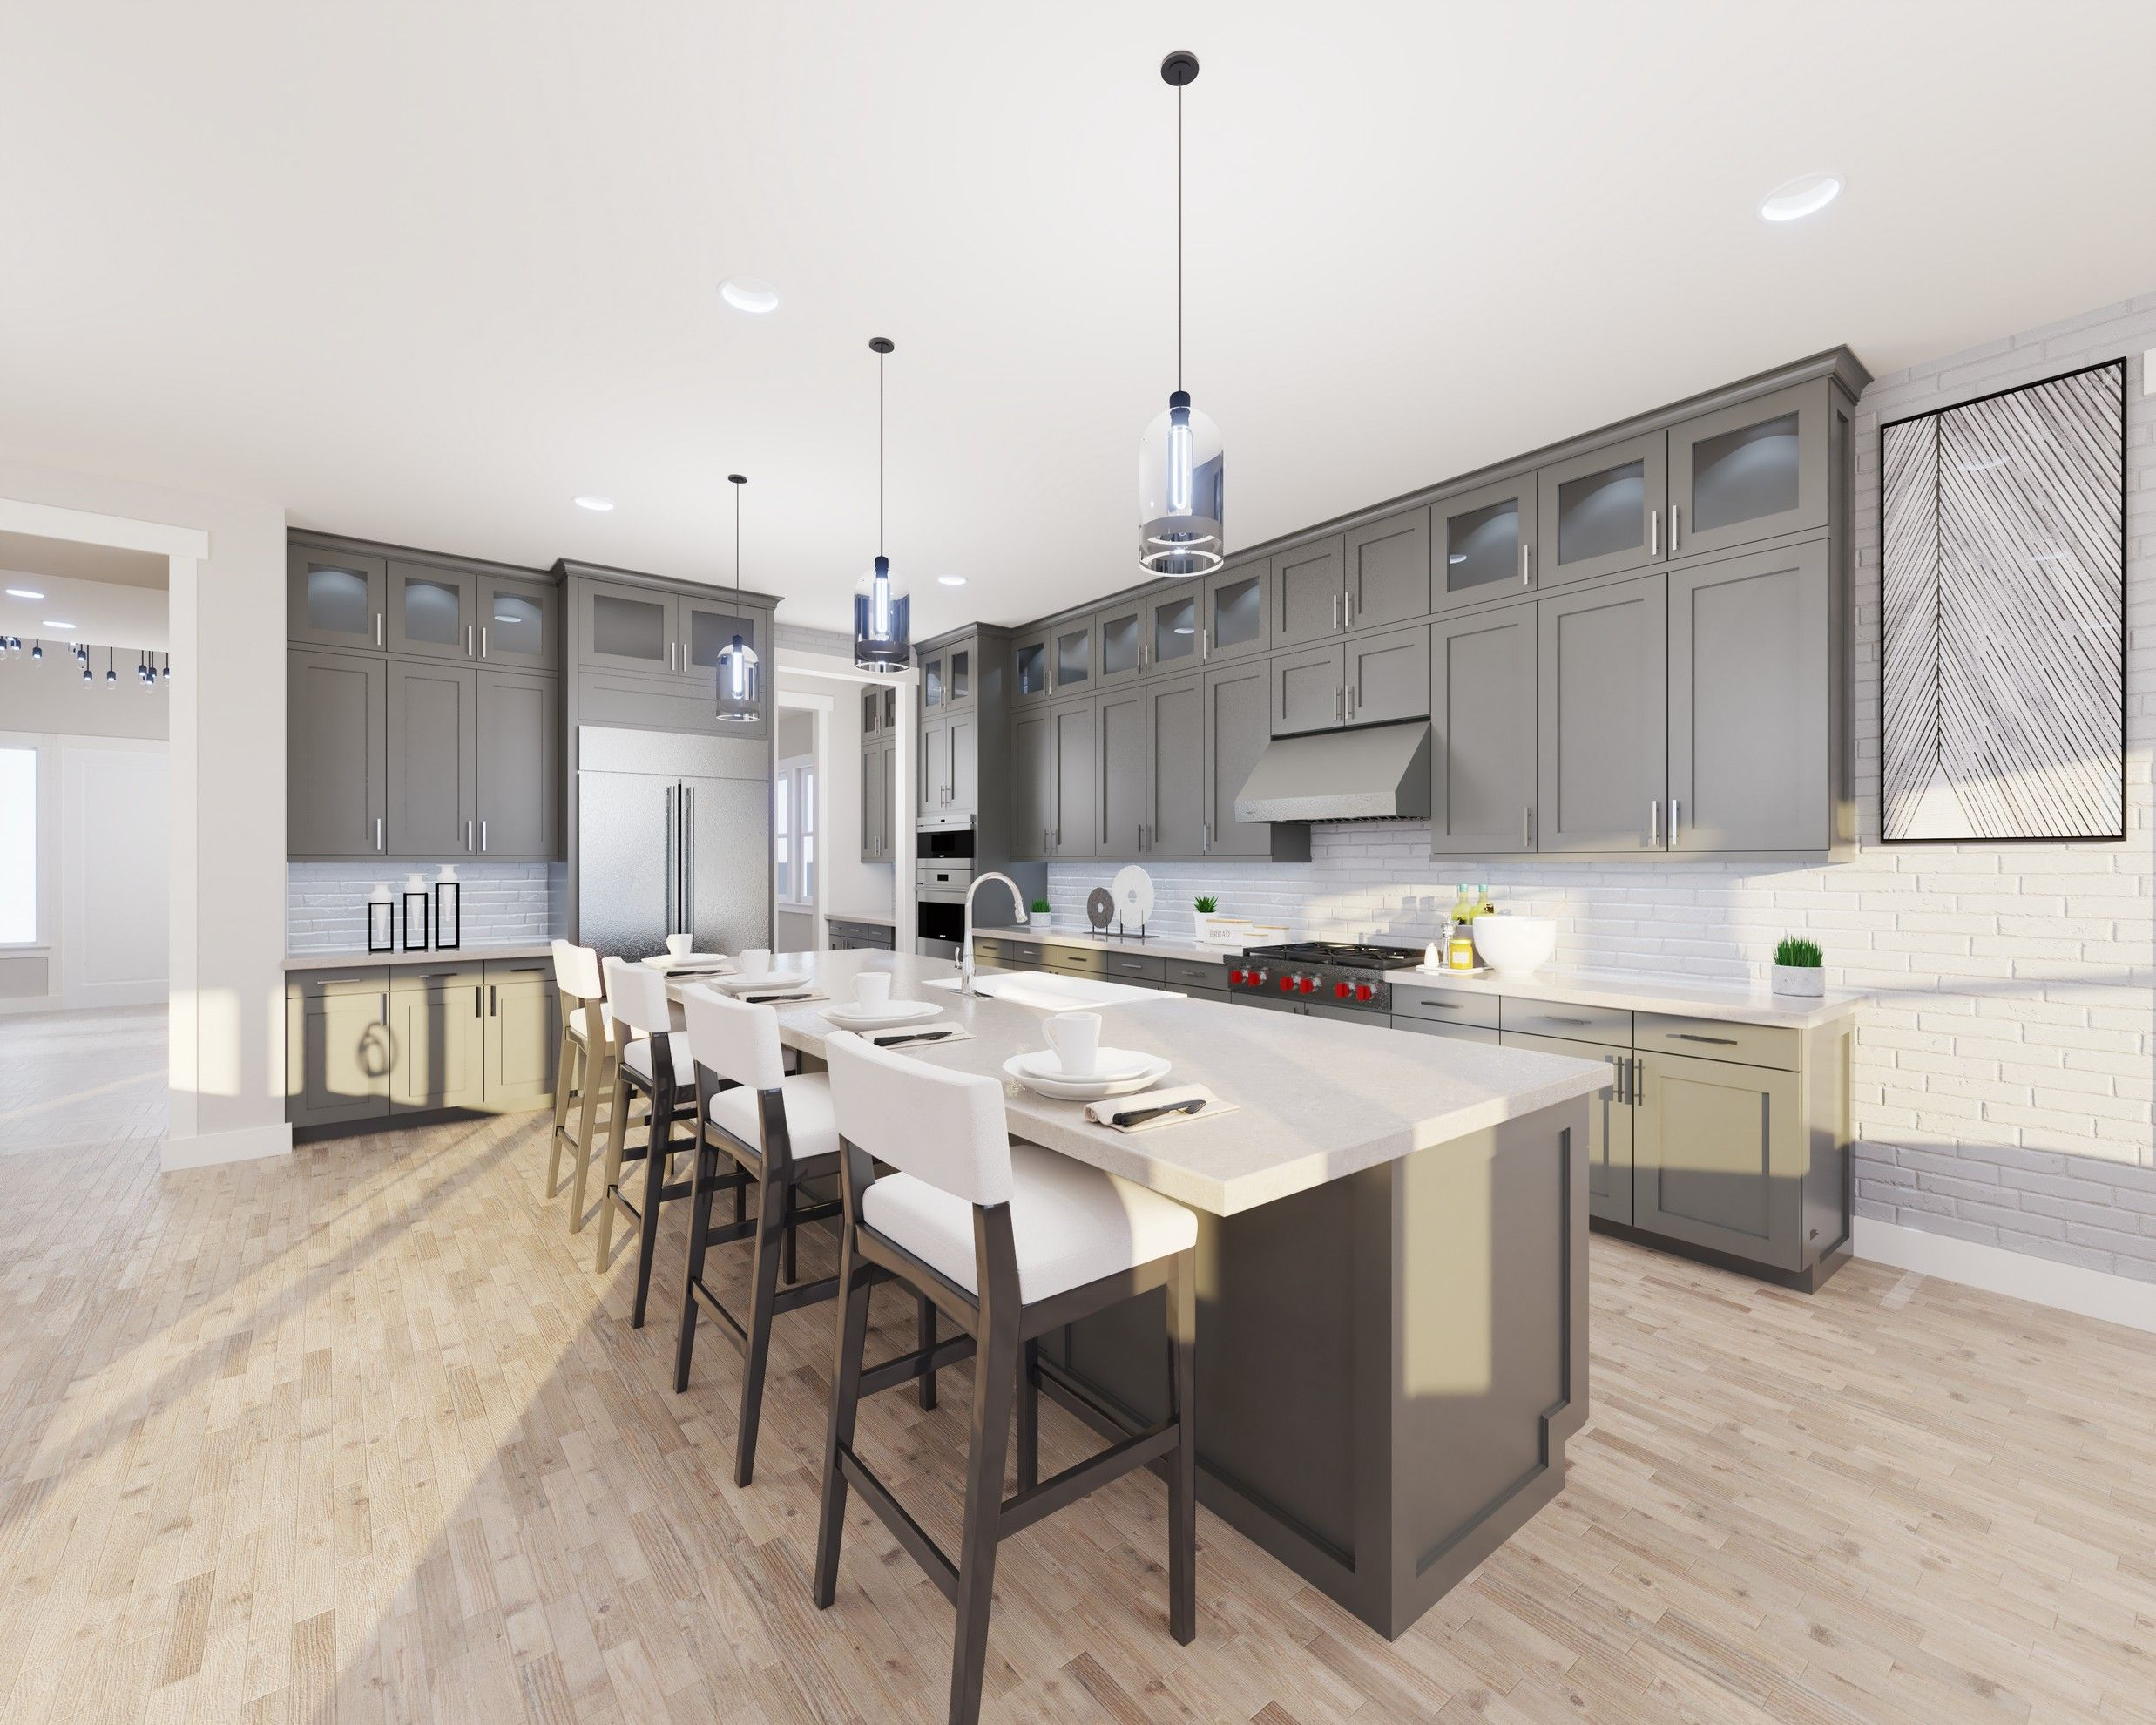 Kitchen featured in the Plan 1 By Haven Development  in Oakland-Alameda, CA